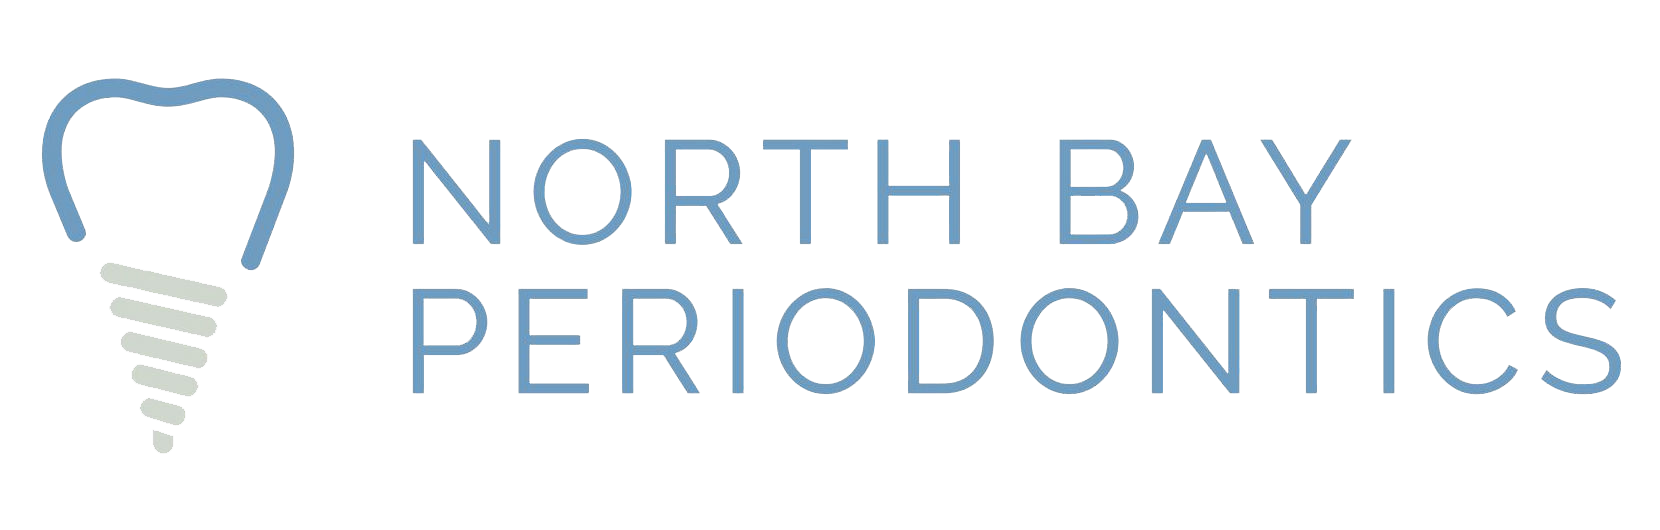 North Bay Periodontics